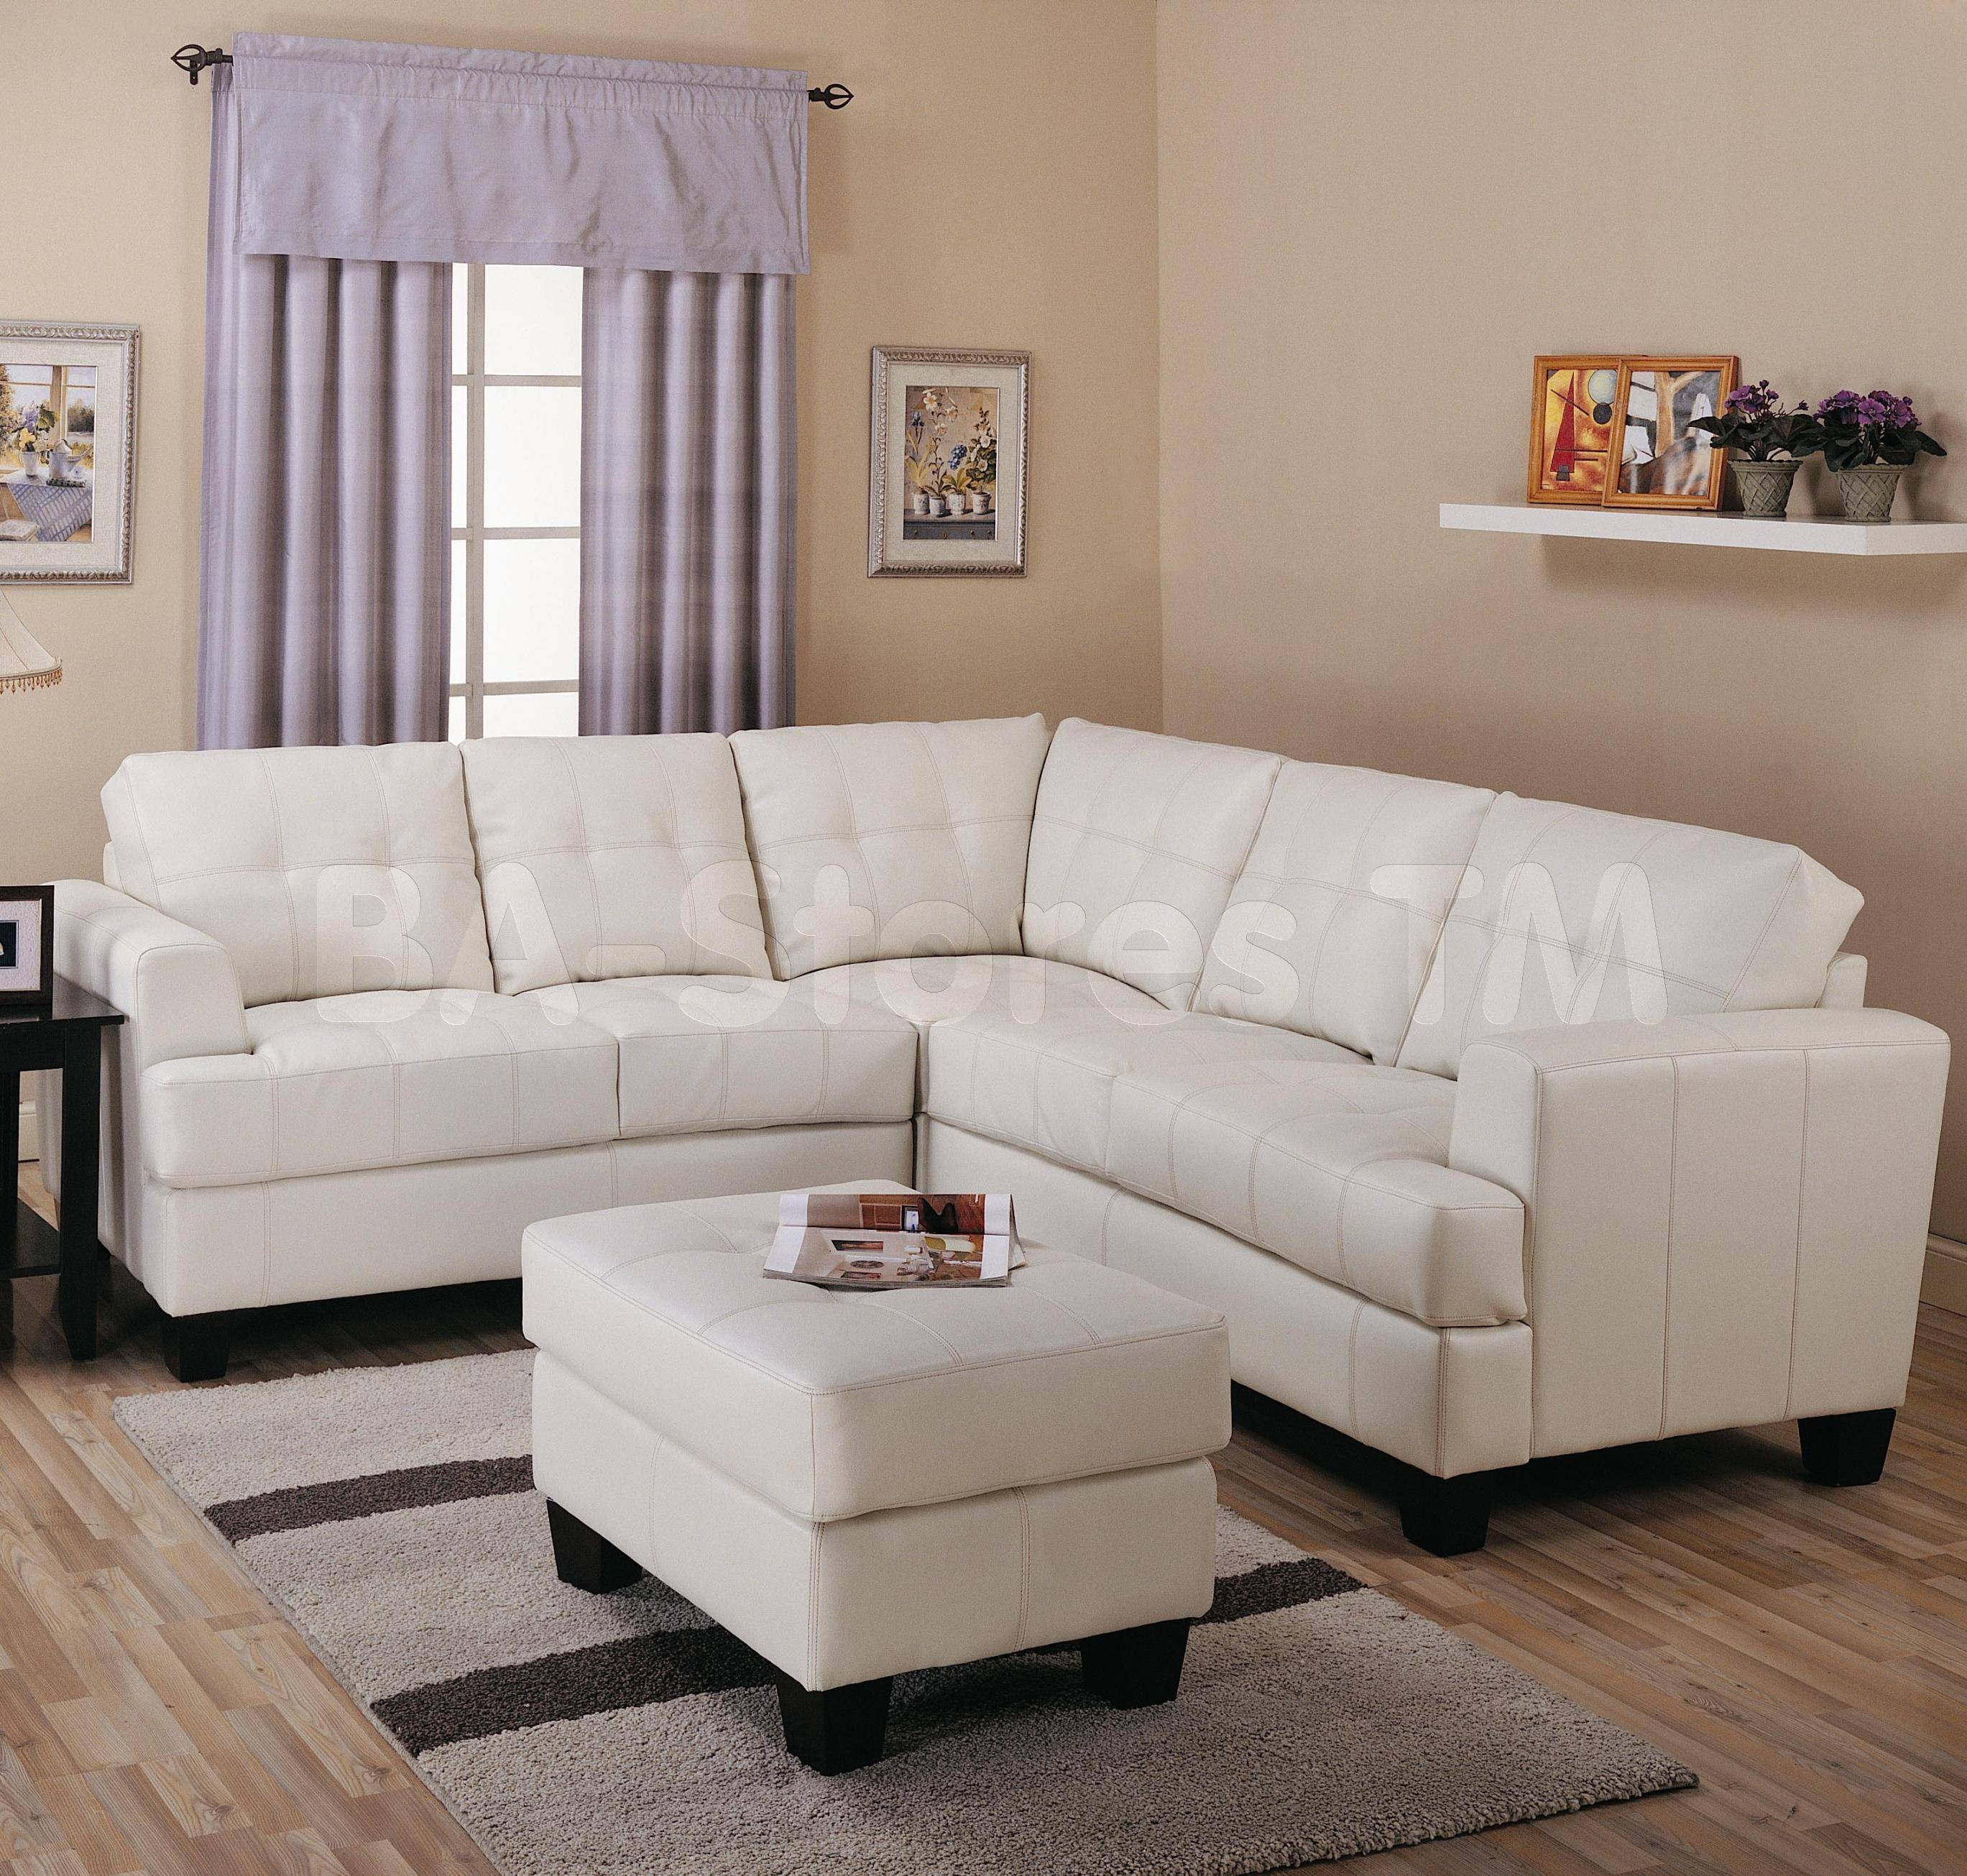 2017 Popular f White Leather Sofa and Loveseat